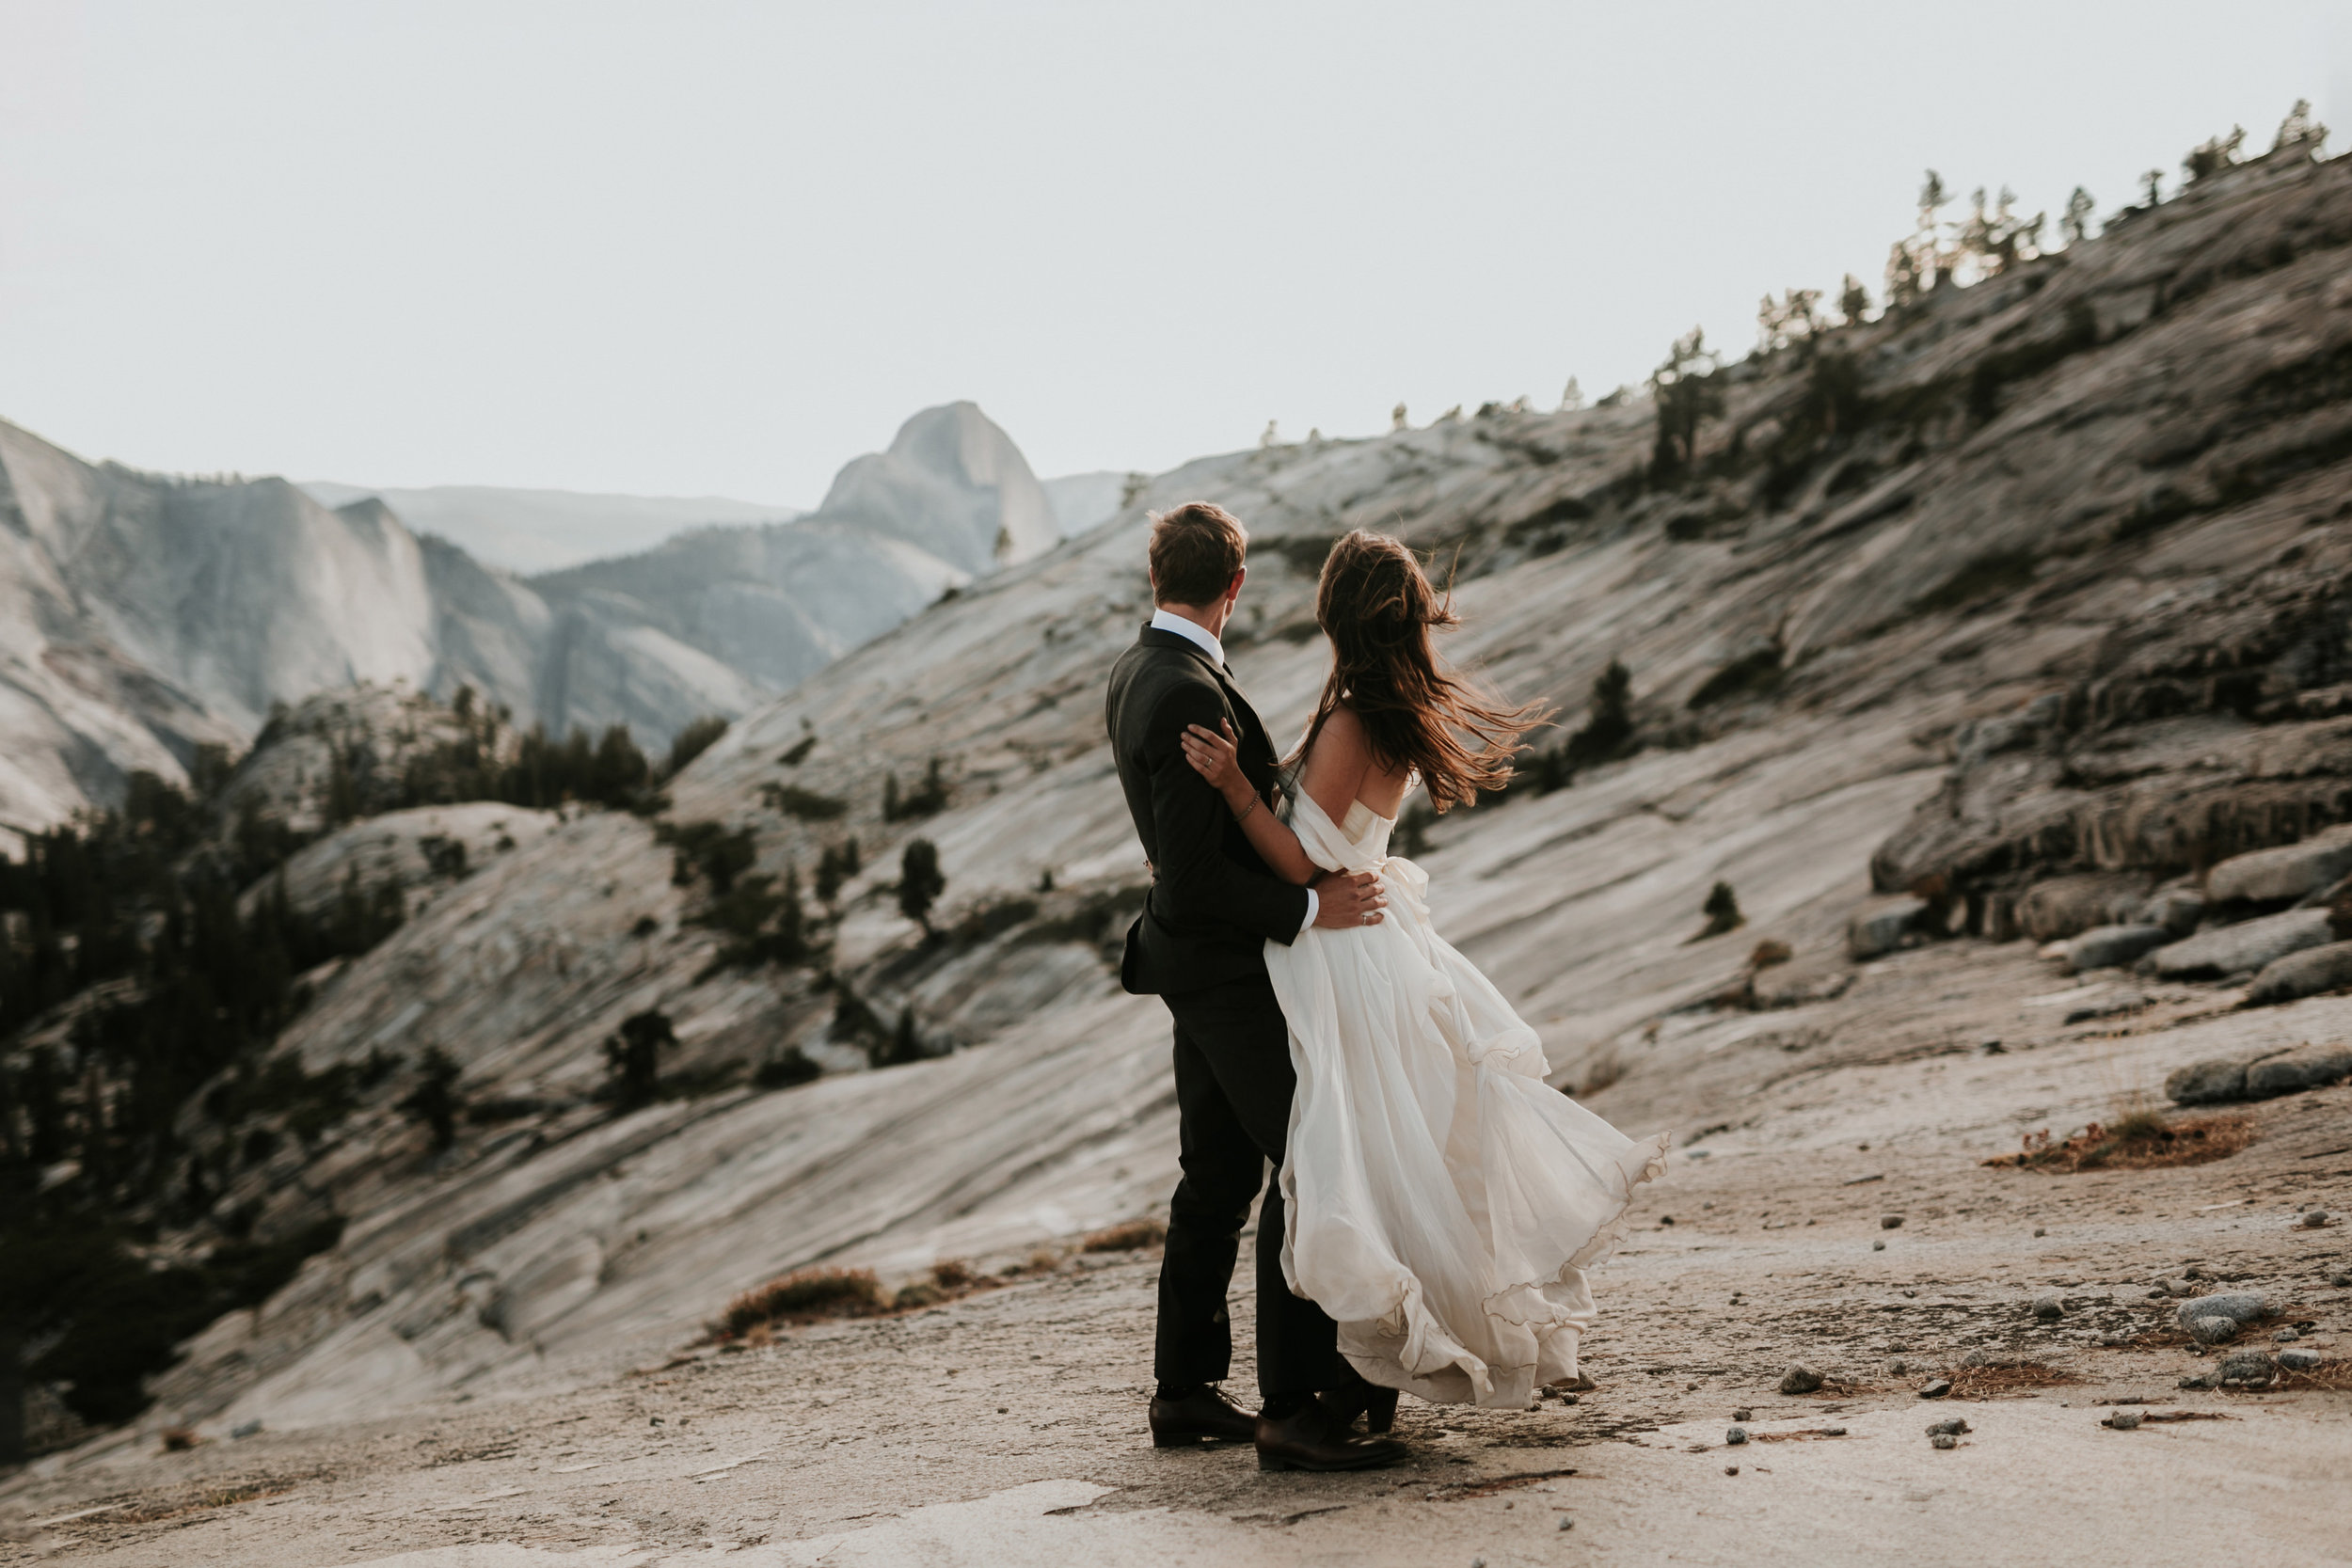 Yosemite Elopement, California Wedding- Grace and Jaden Photography- Shannon and Ian (31).jpg